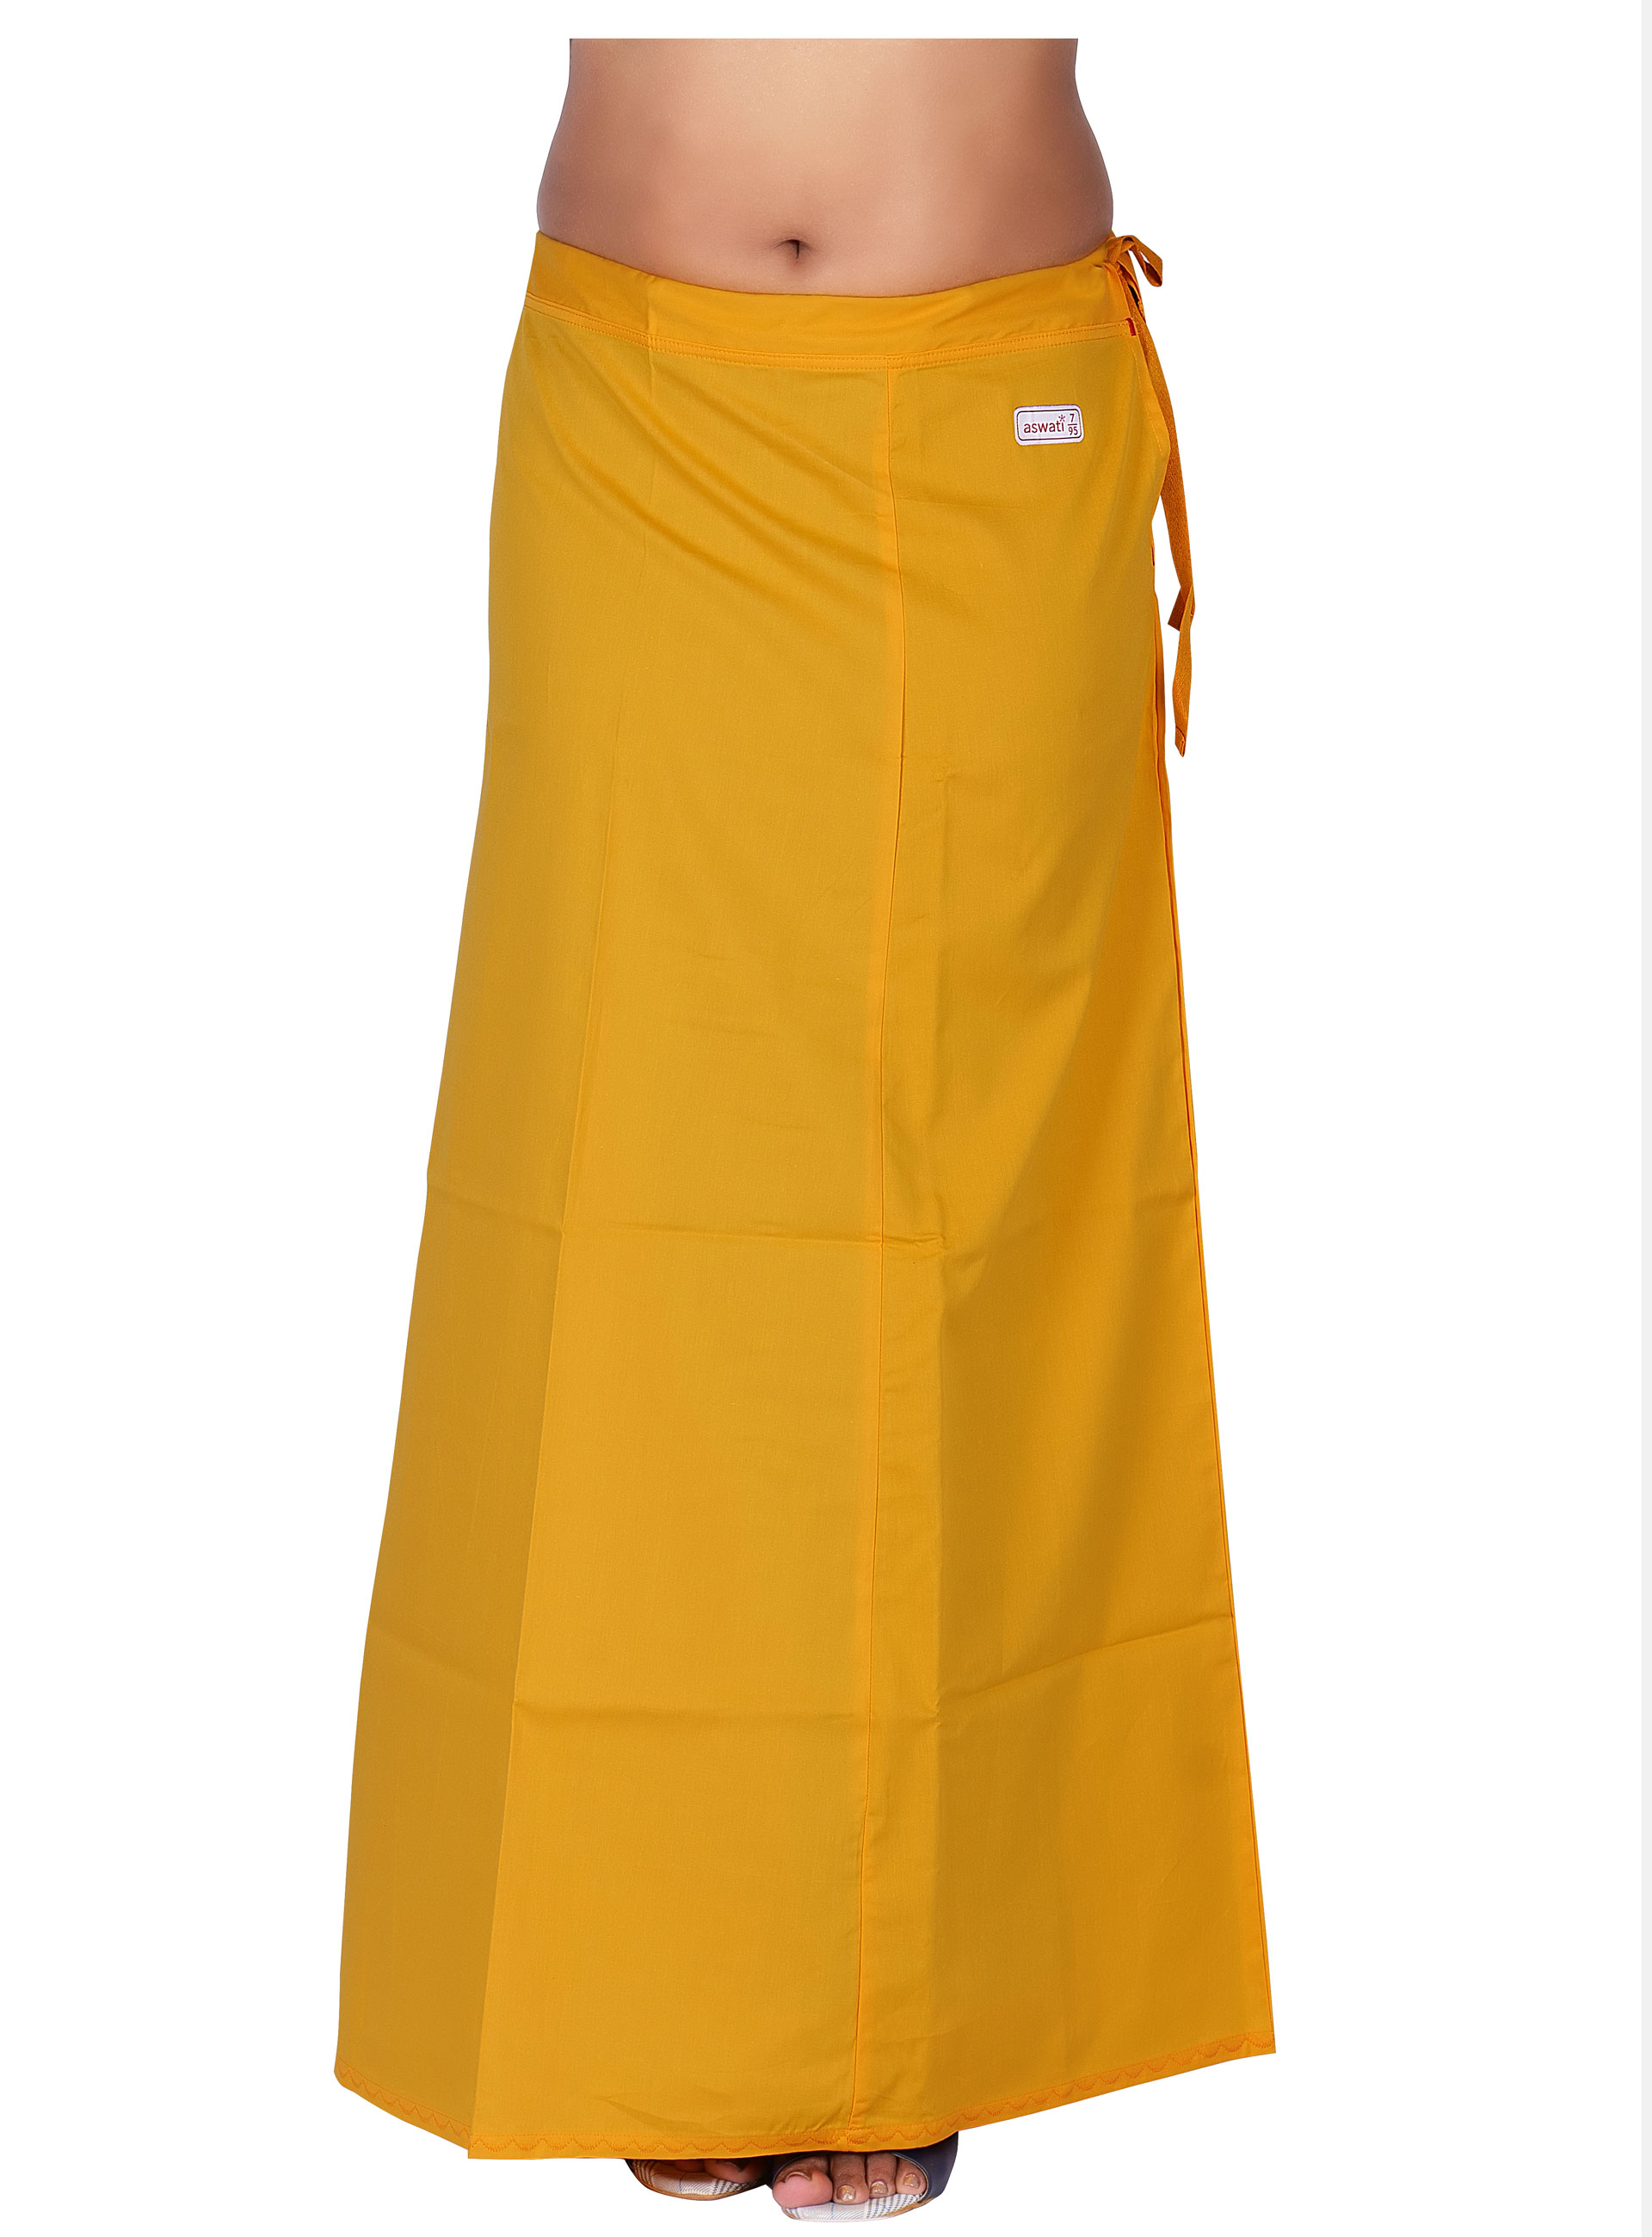 Yellow Color Aswati Premium Inskirts (7 PART)